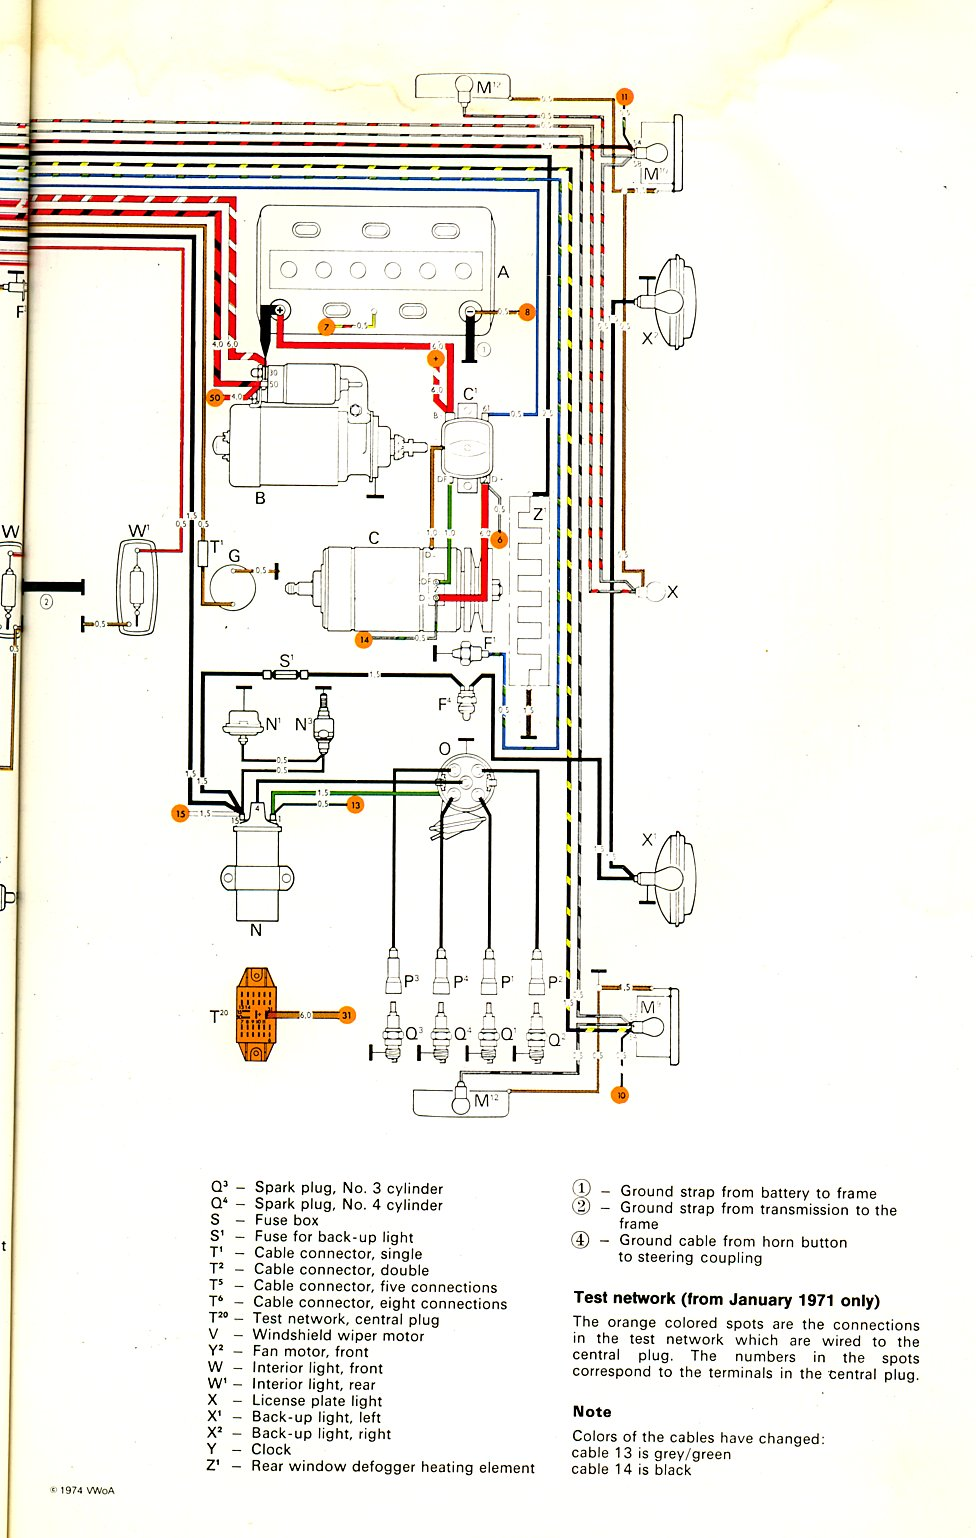 Type 2 Wiring Diagrams Box For Computer Harness